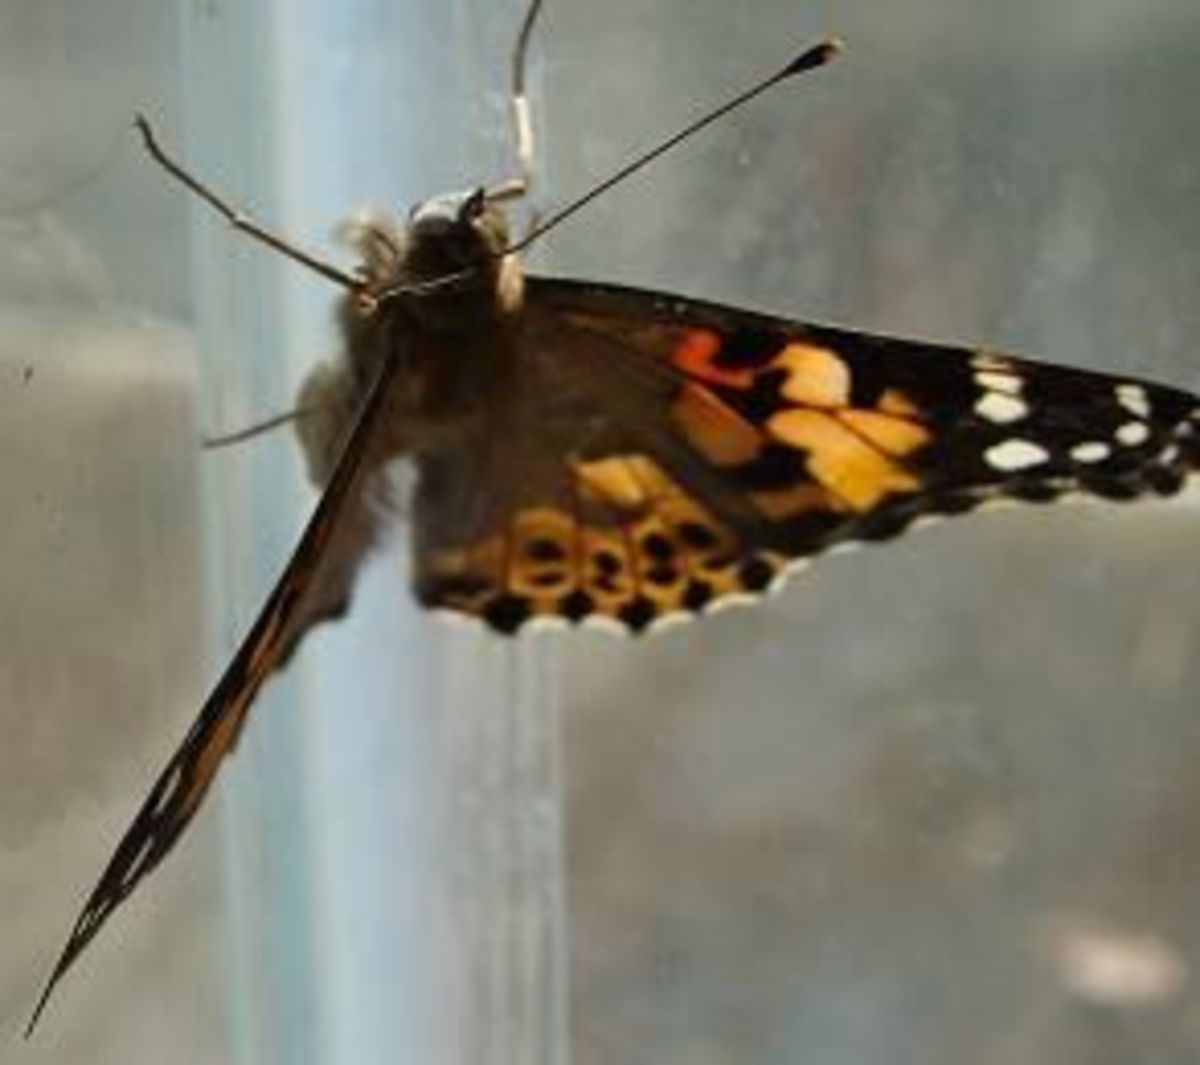 A Painted Lady Butterfly holding on to the sides of the glass aquarium.